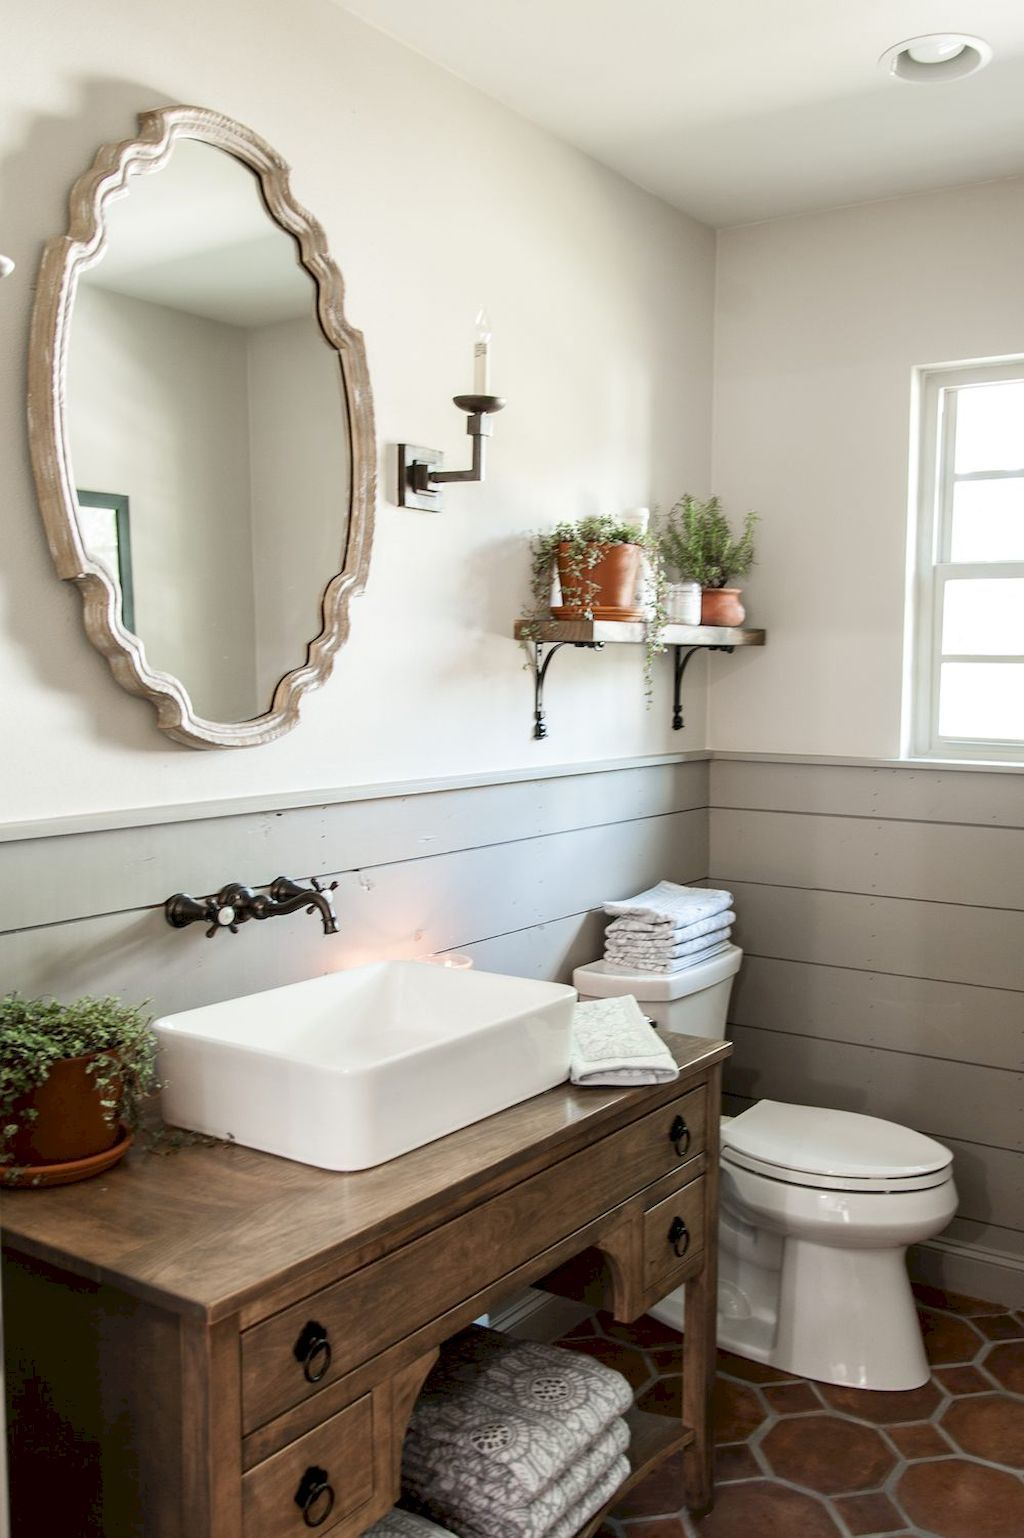 Vintage farmhouse bathroom remodel ideas on a budget (38) | House ...